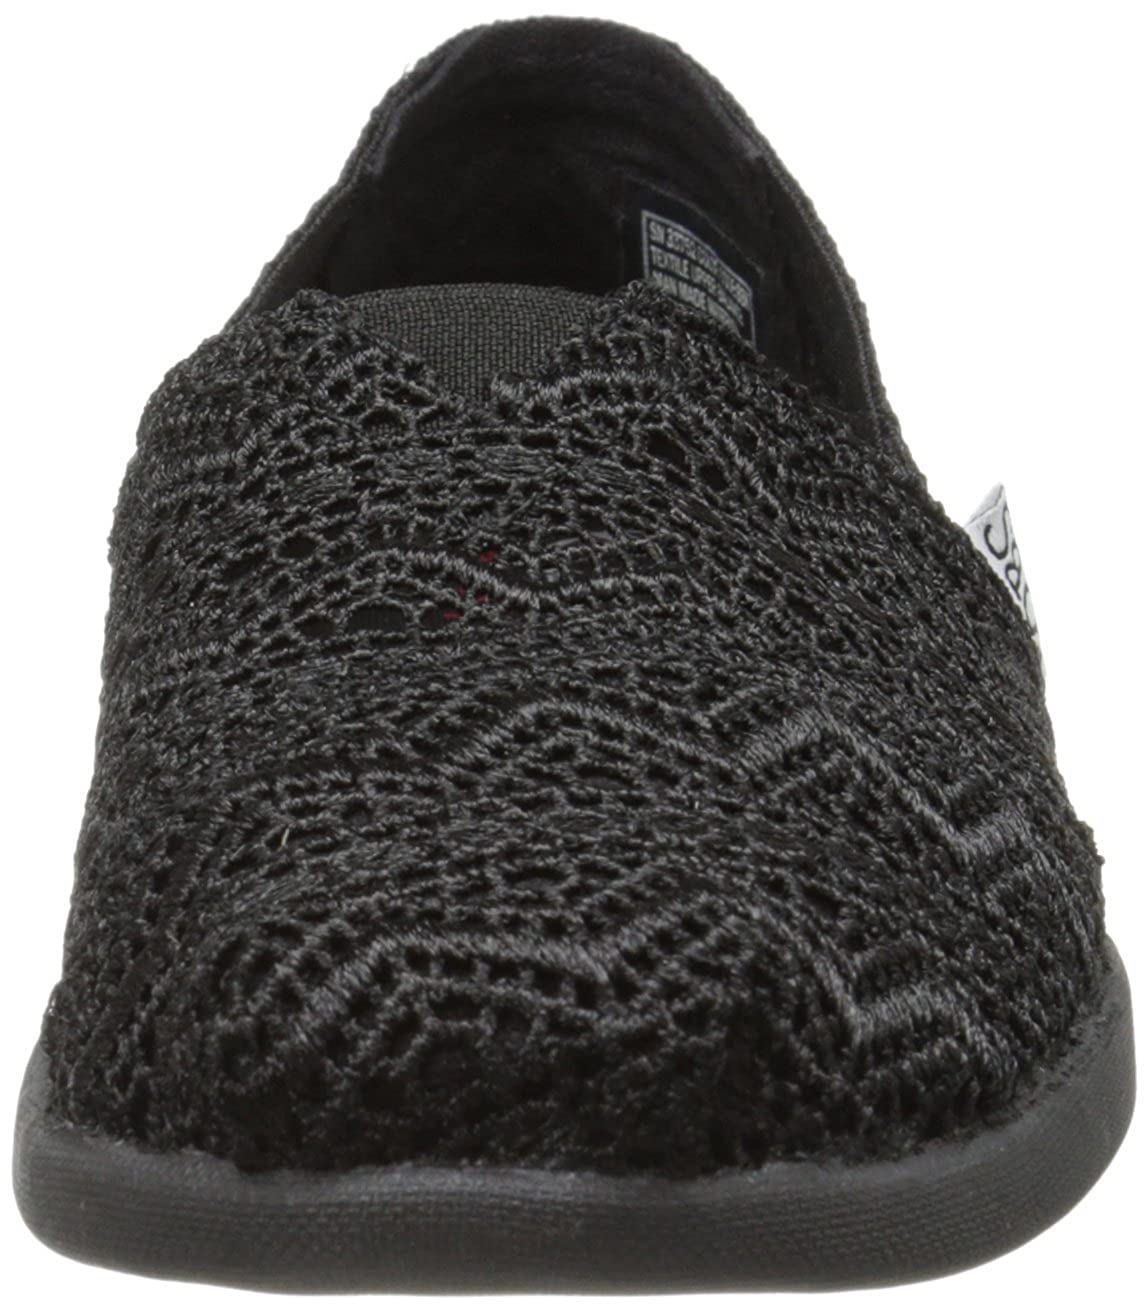 Skechers Damen, Schuh, Bobs World - Dream Catcher Schwarz (Bbk)